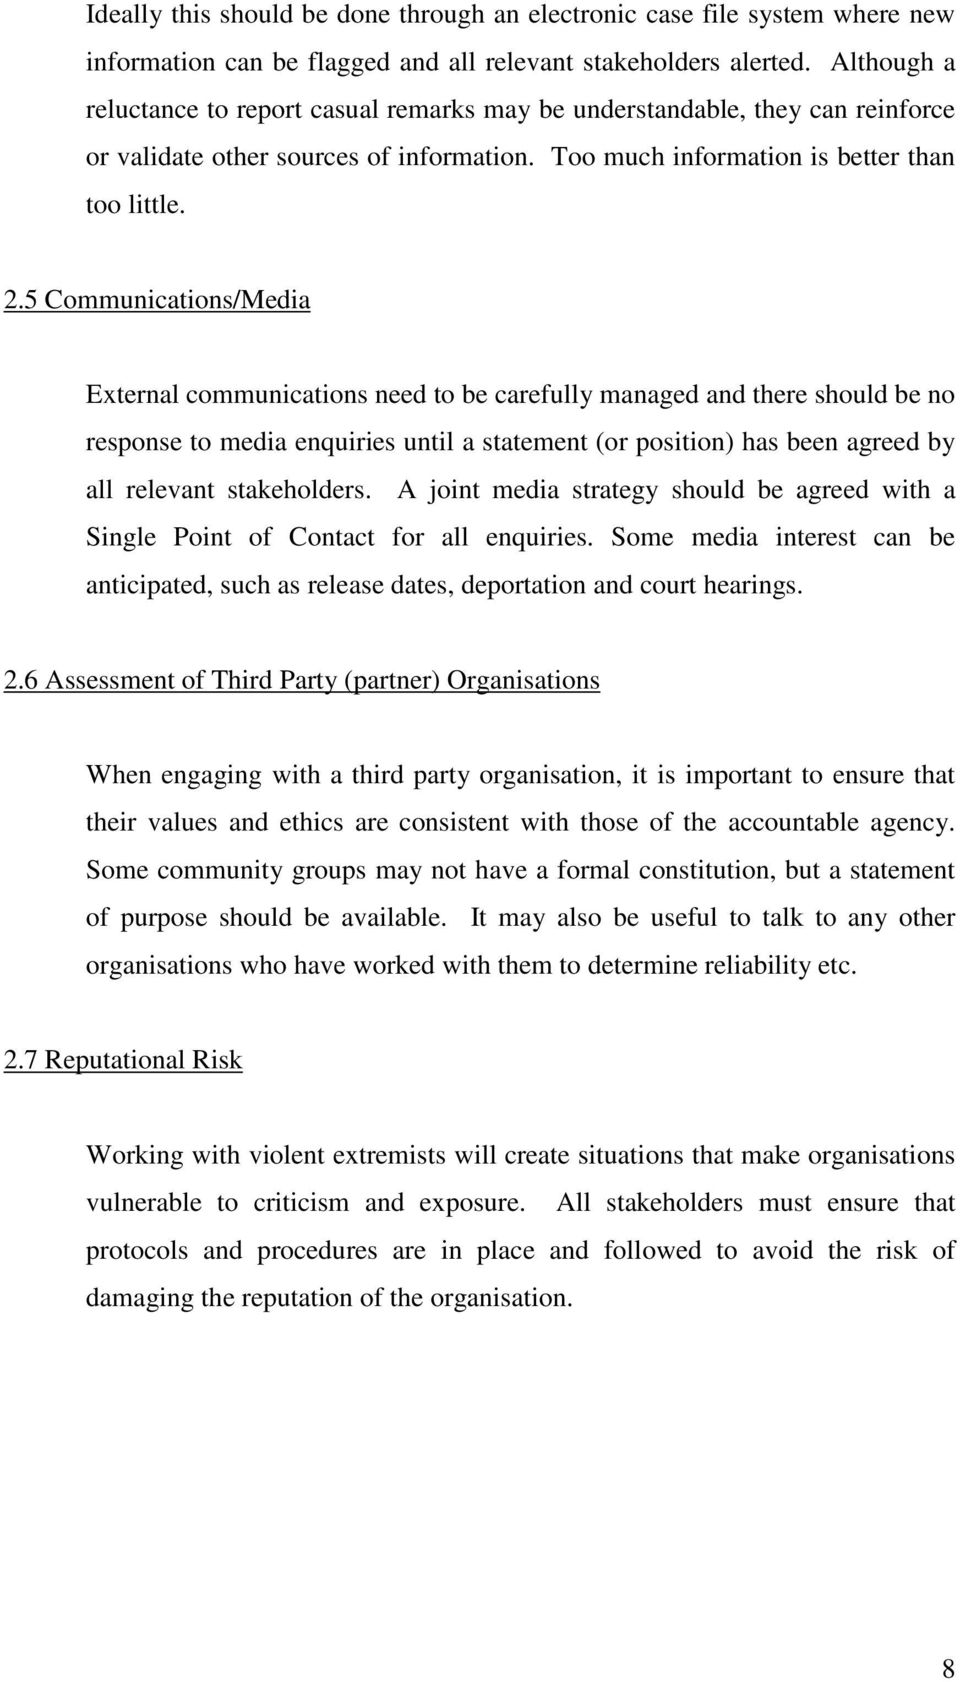 5 Communications/Media External communications need to be carefully managed and there should be no response to media enquiries until a statement (or position) has been agreed by all relevant